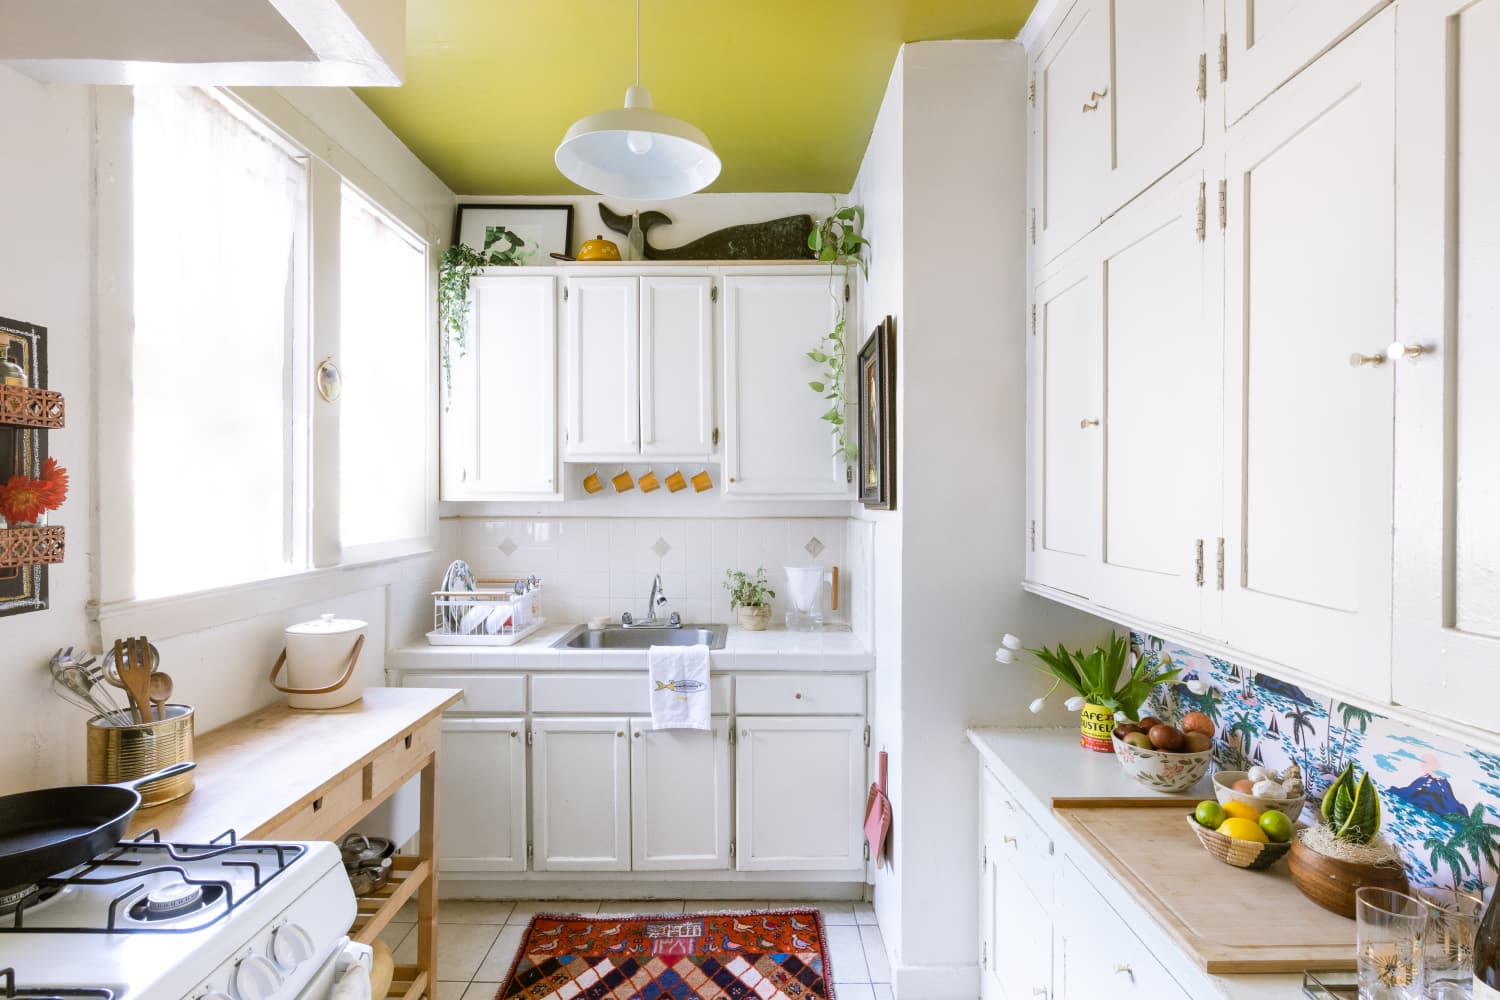 11 Simple Cleaning Habits That Are Obvious to Experts, But Maybe Not to You